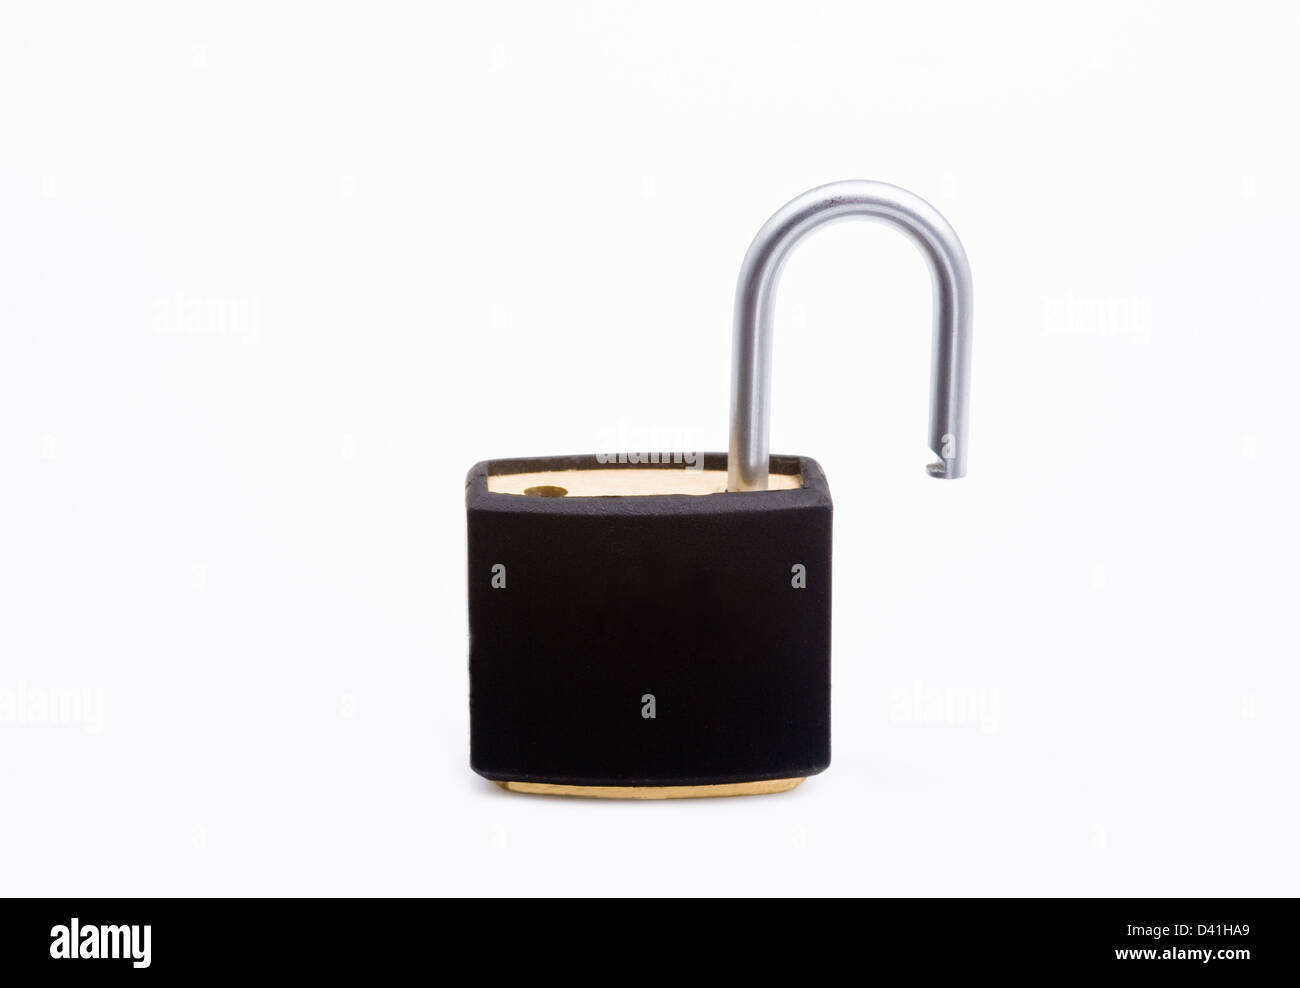 Unlocked, open padlock. - Stock Image